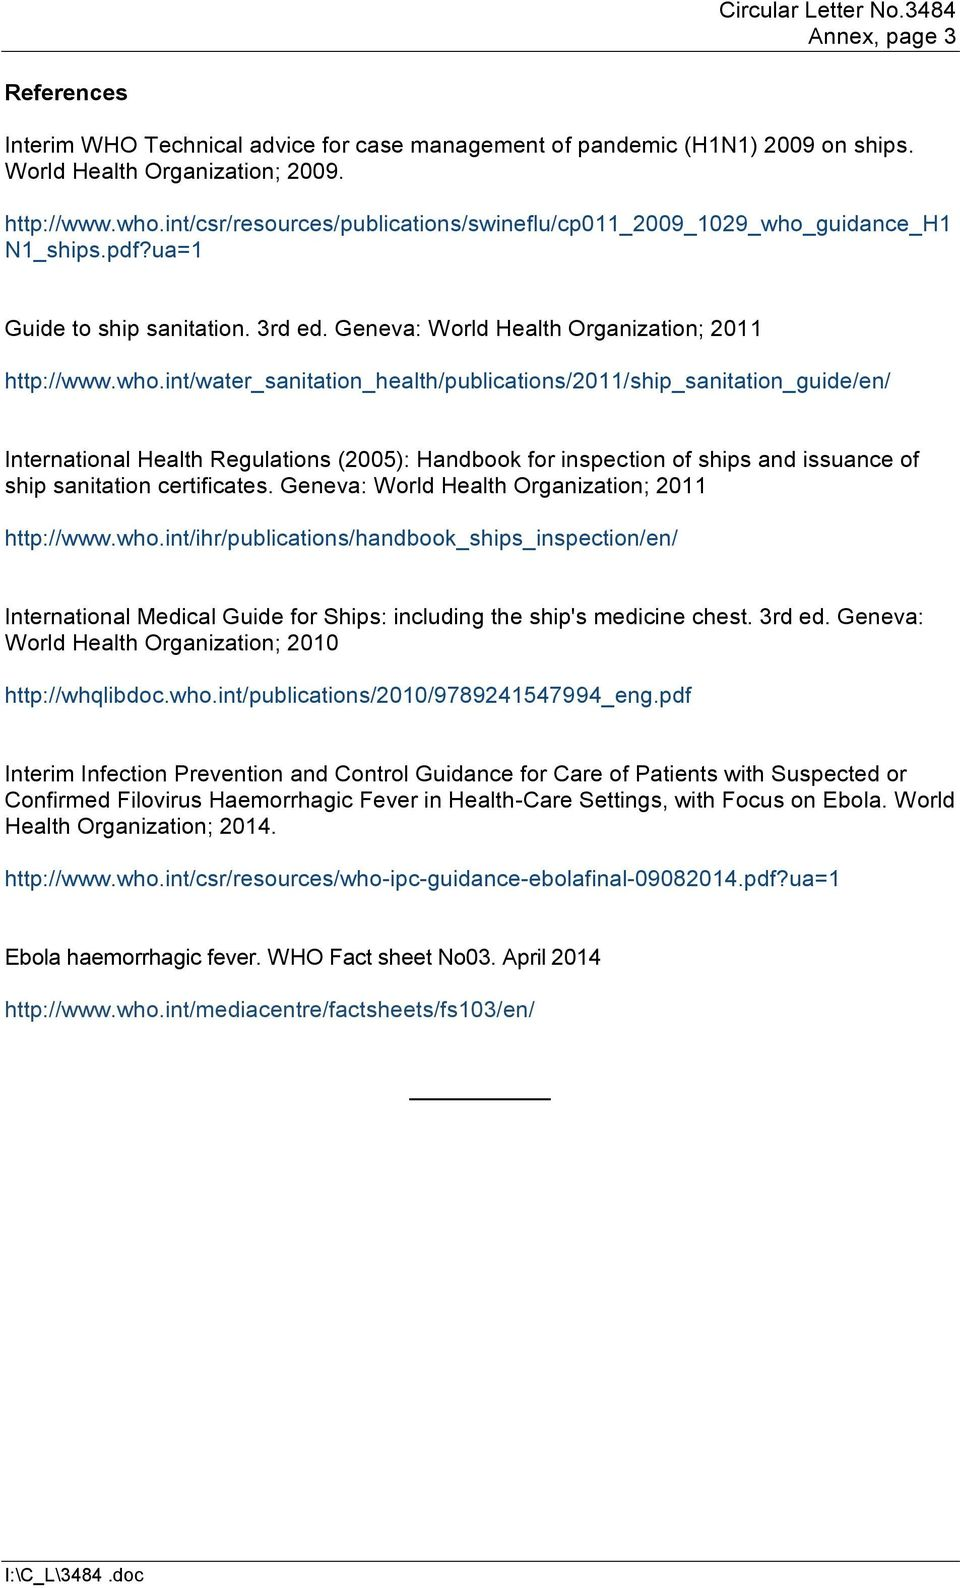 guidance_h1 N1_ships.pdf?ua=1 Guide to ship sanitation. 3rd ed. Geneva: World Health Organization; 2011 http://www.who.